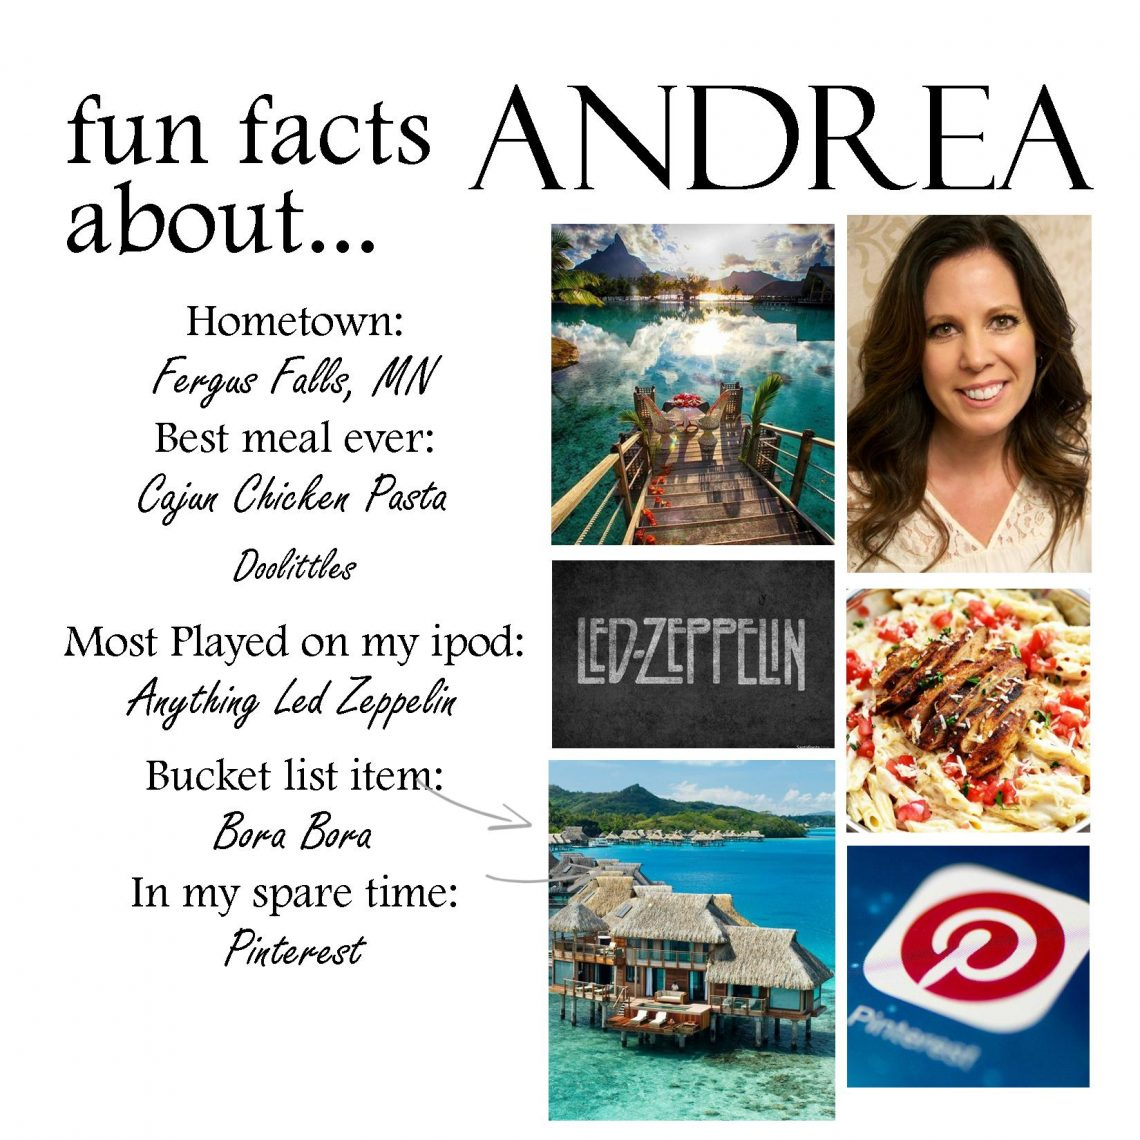 andrea-fun-fact